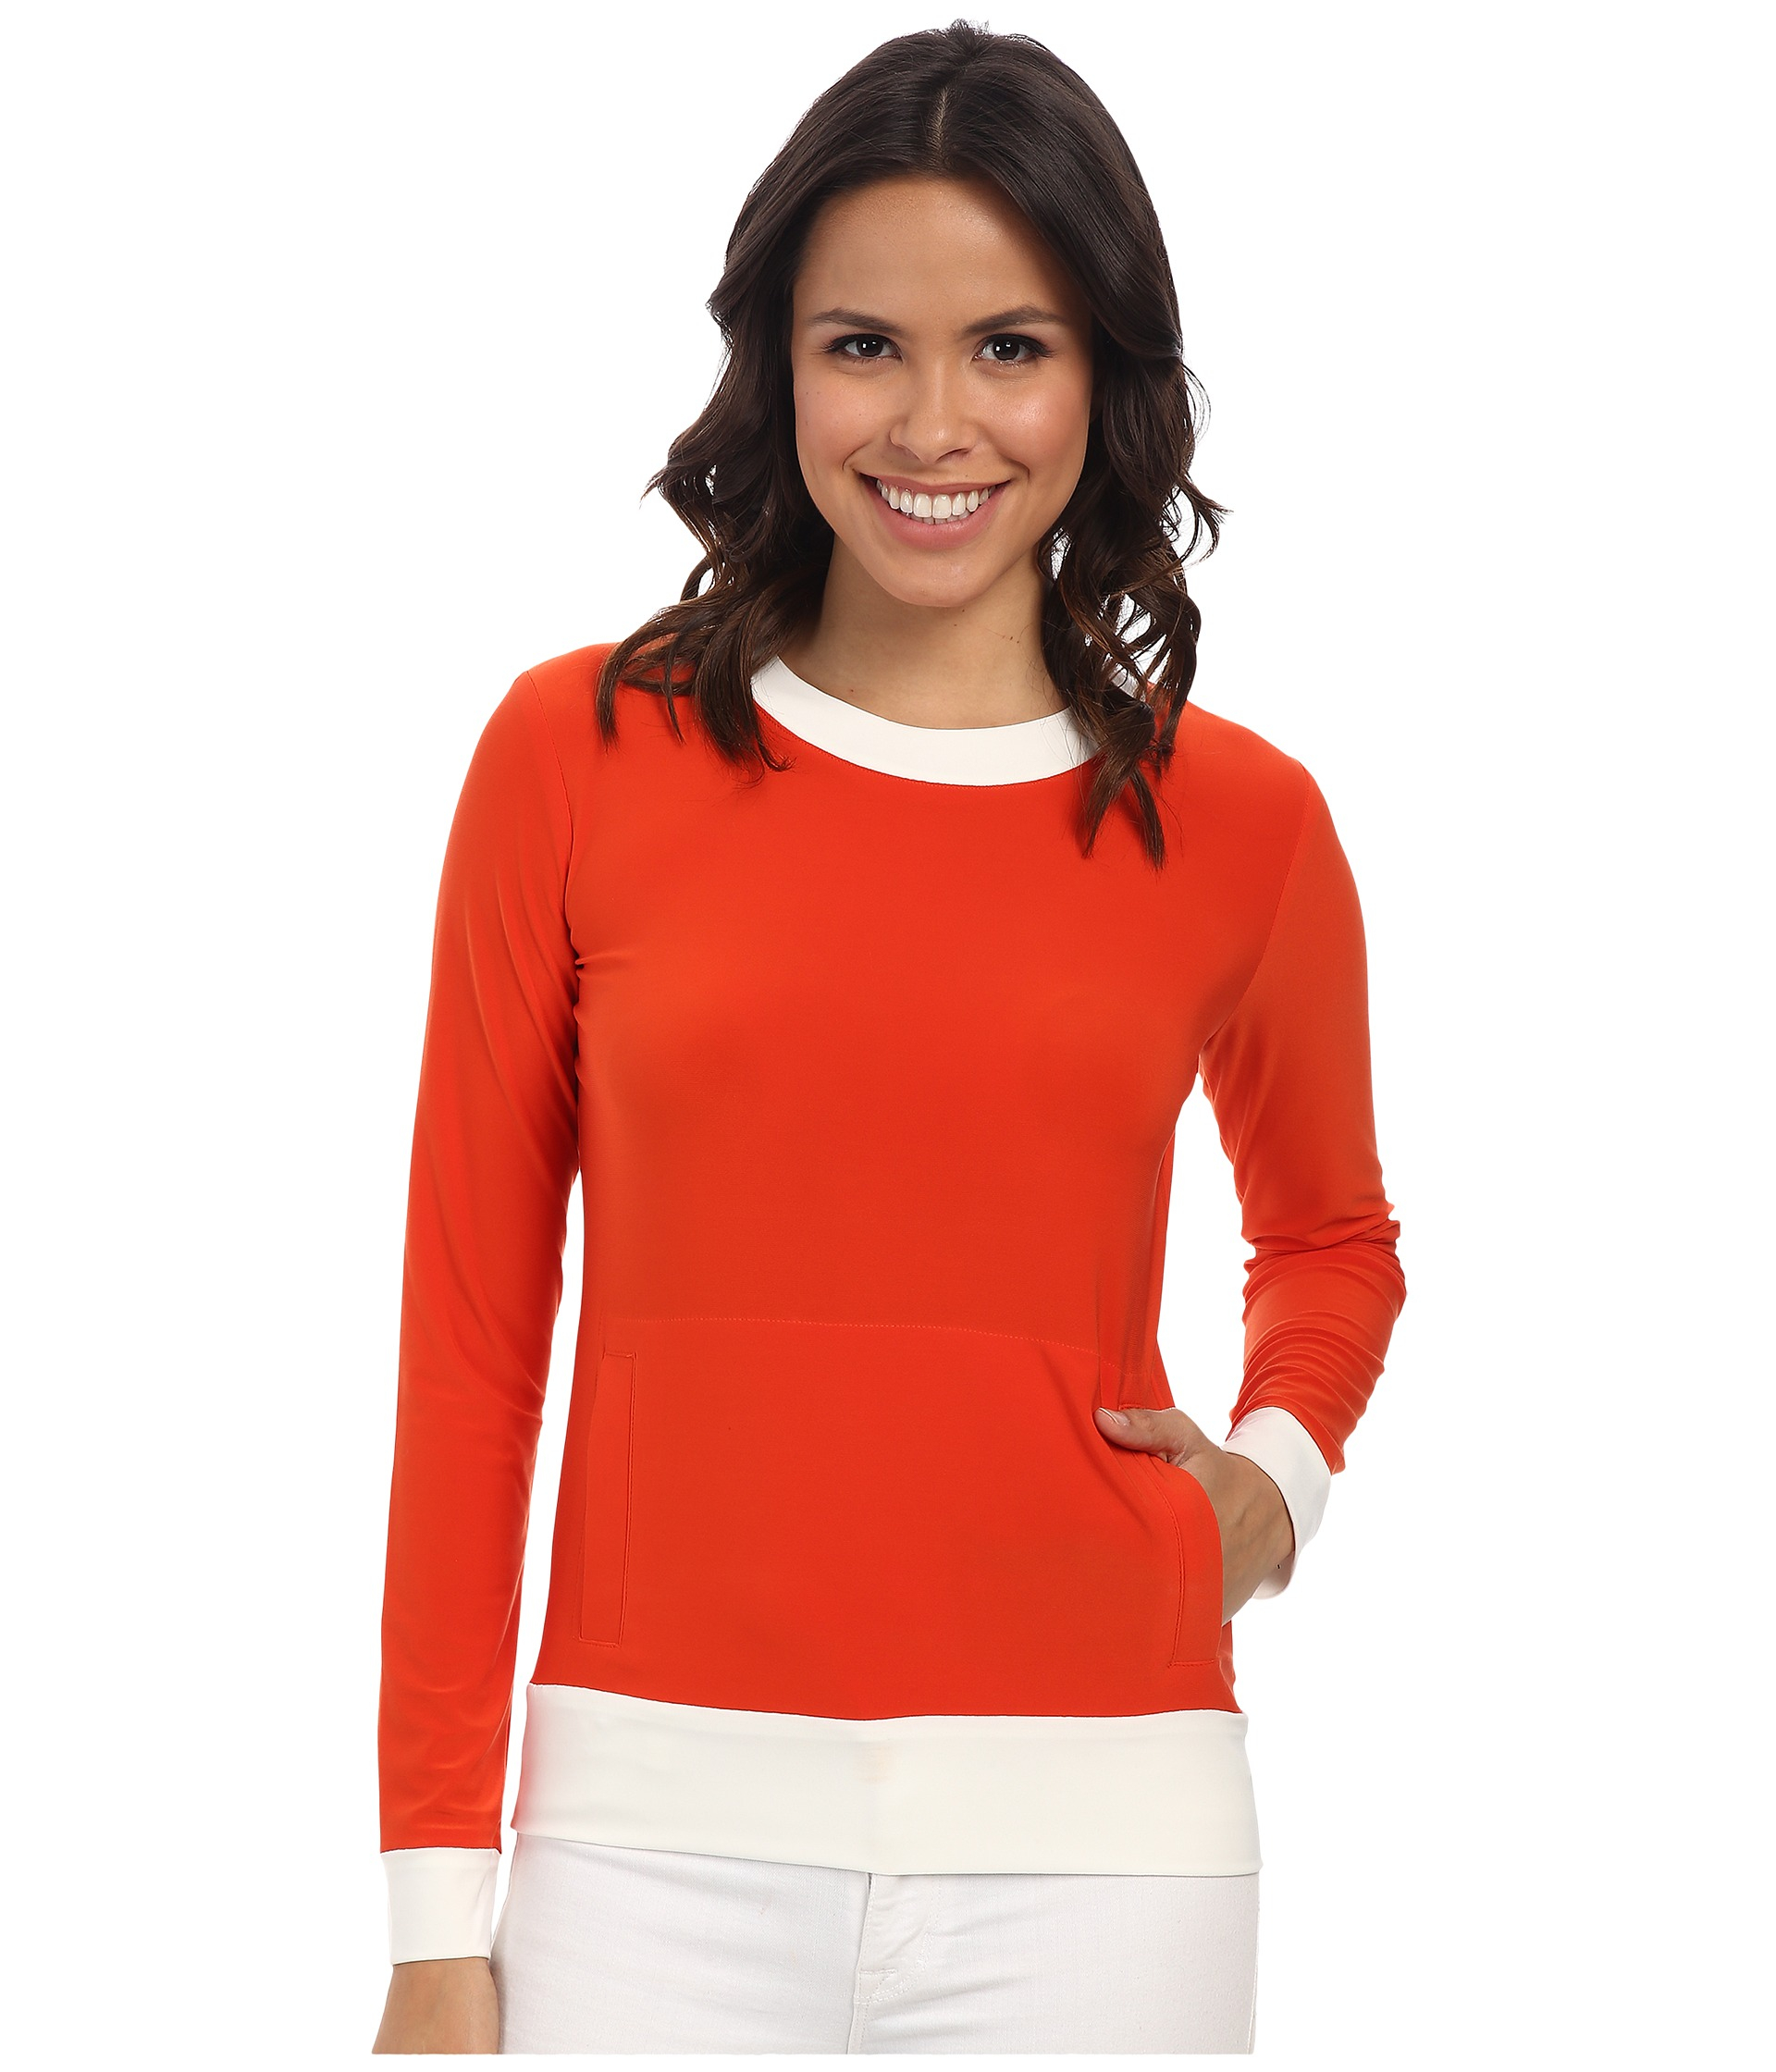 Long Sleeve Tops Best Selling Tops Featured. Vintage Style Tops Work Tops Fall Tops Quirky Tops Collared Tops Print & Plaid Tops Fall Tops. Freshen up your closet with our fabulous orange tops! Our cute orange blouses and shirts are perfect for pairing with your favorite wardrobe pieces. Jazz up your skinny jeans by wearing an orange polka.